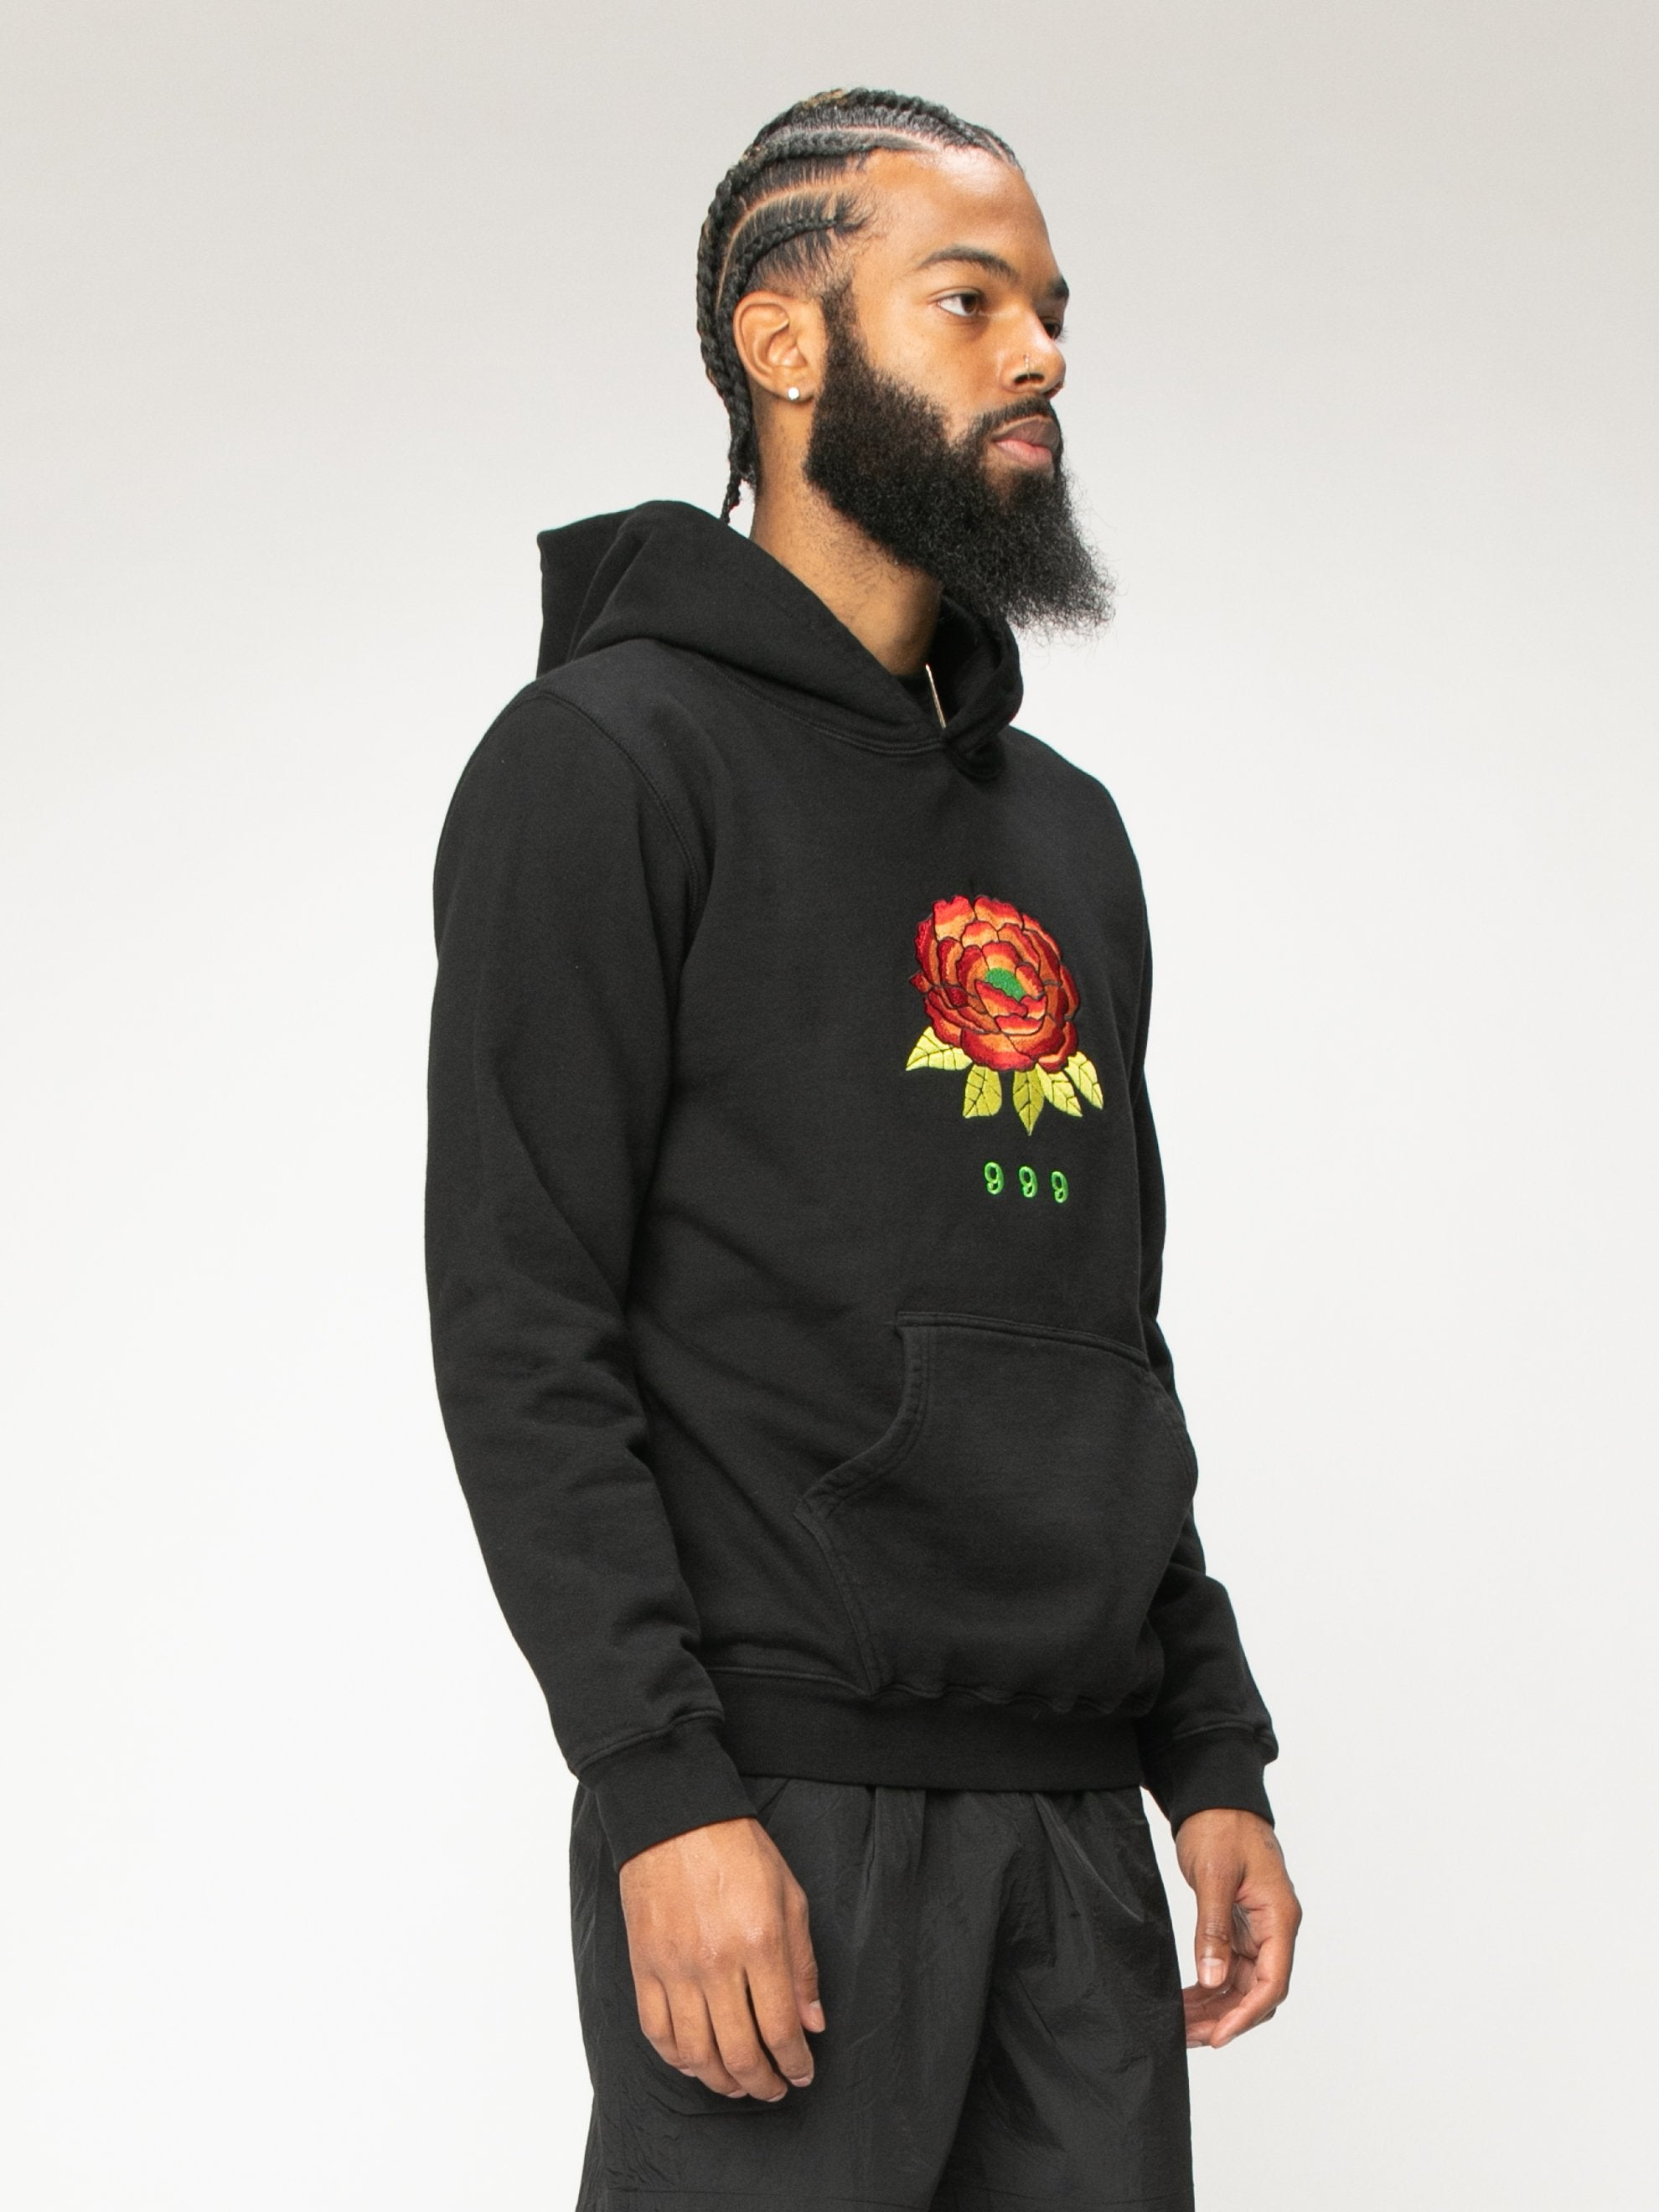 Black 999 Embrodered Hoody 4